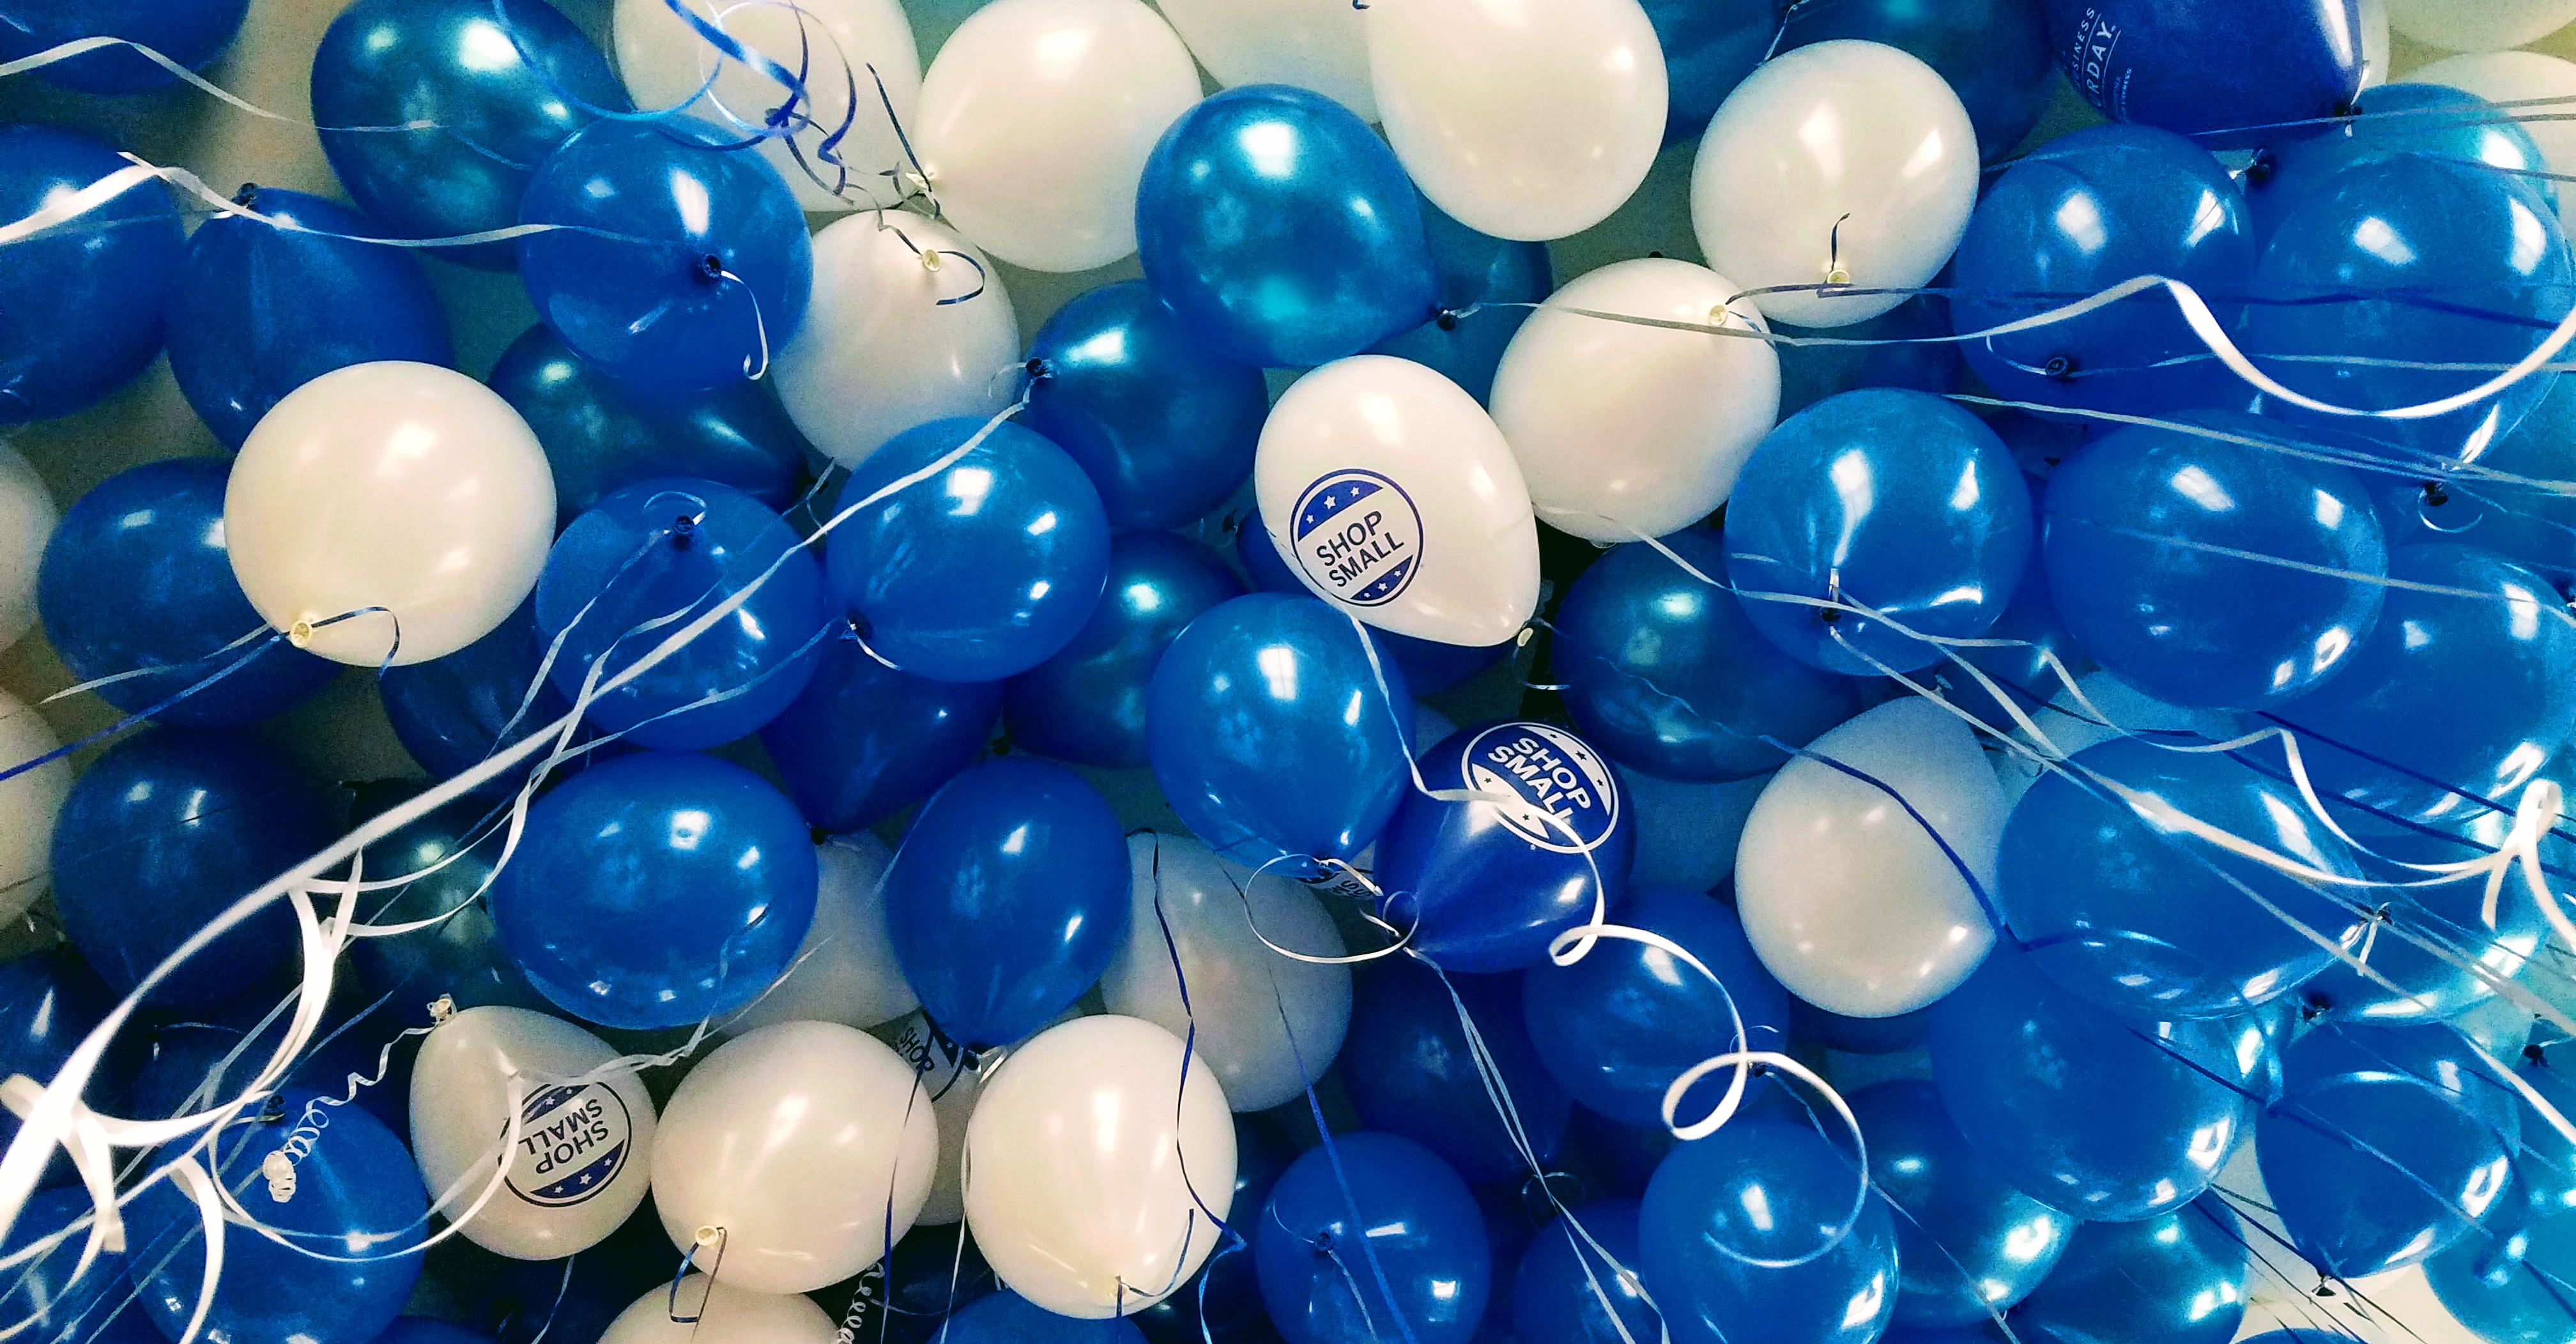 Small Business Saturday Balloons